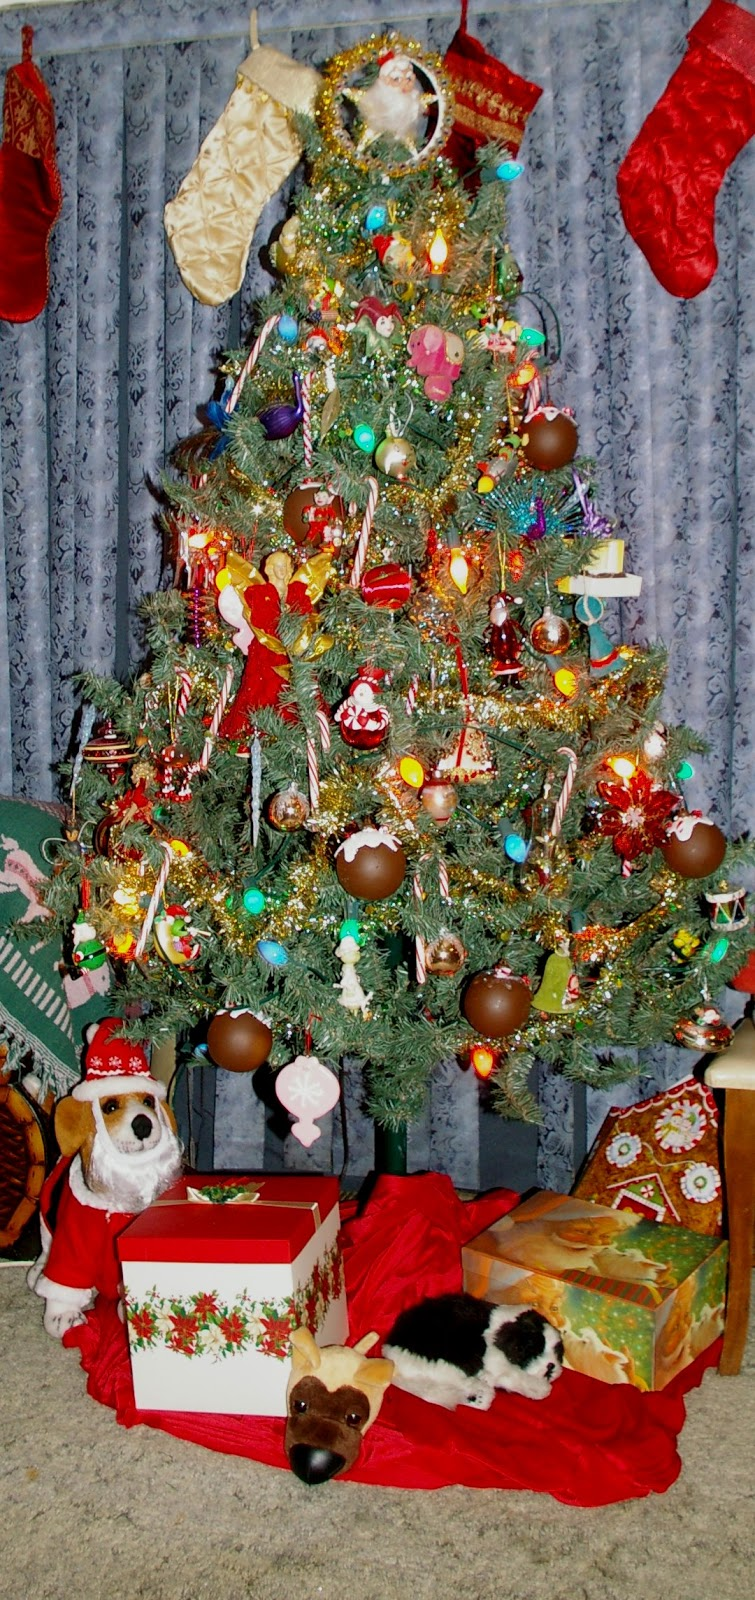 And Here Are Some Of My Decorations The Tree